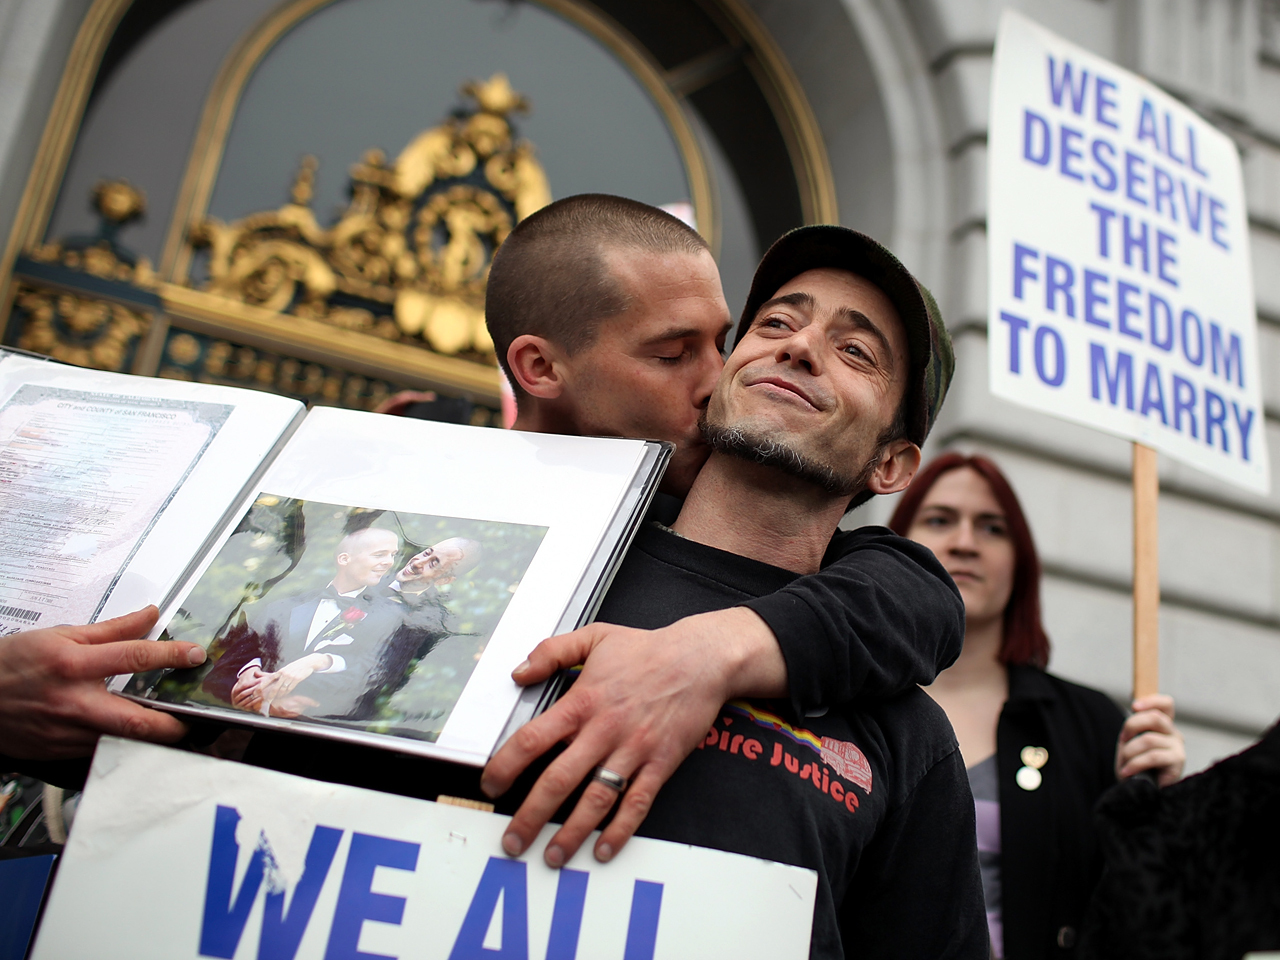 Congratulate, gay marriage is unconstitutional amusing idea